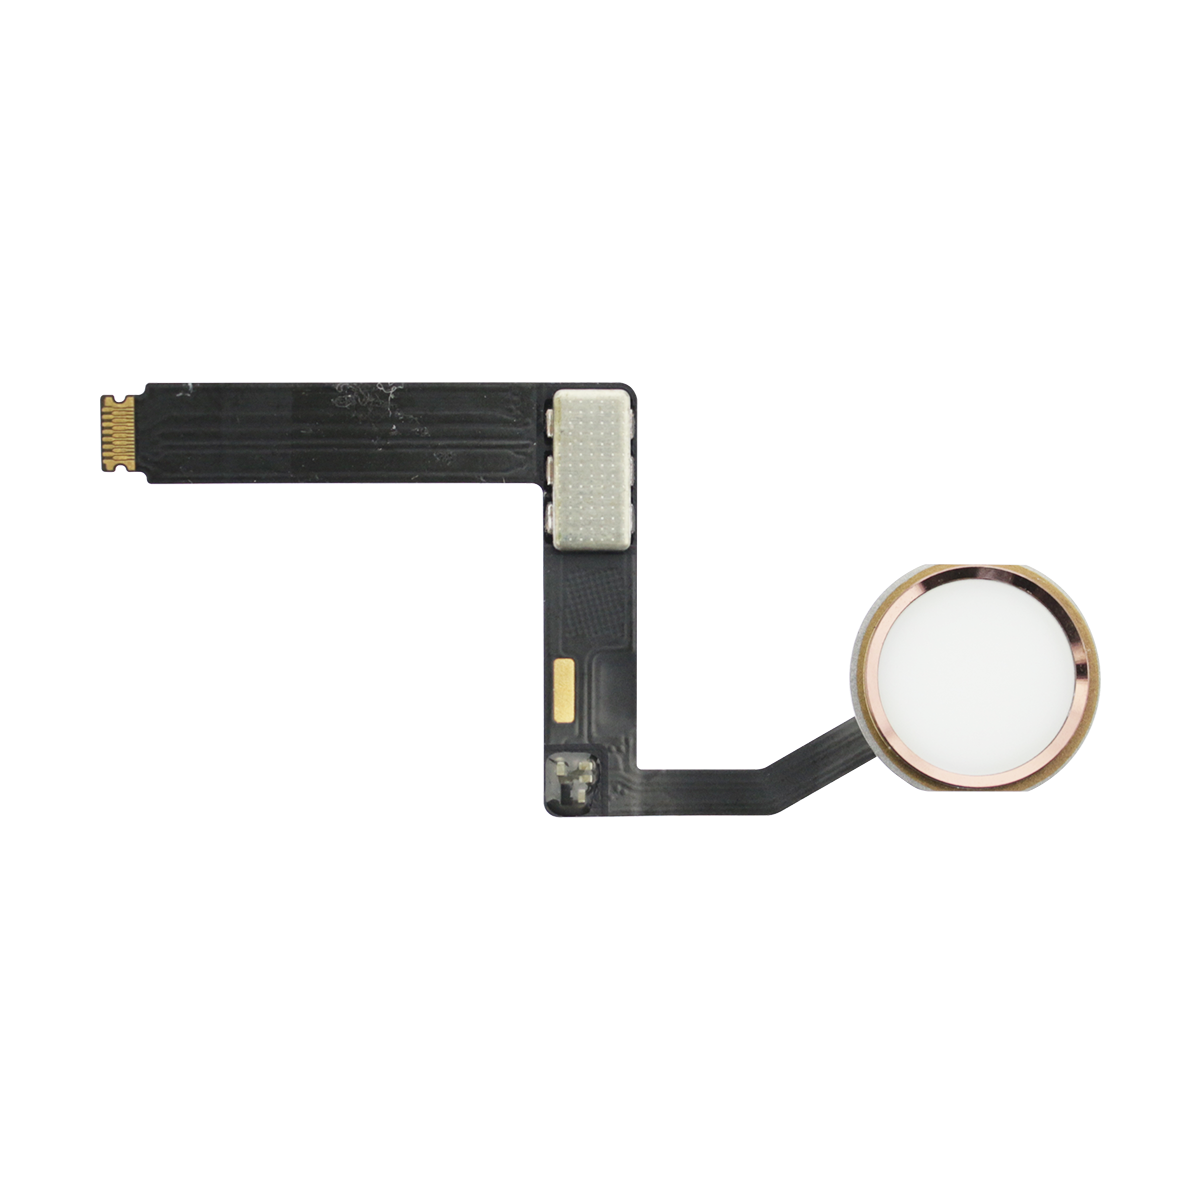 ipad-pro-9-7-home-button-assembly-rose-gold_S4VIBKZTYIMM.png